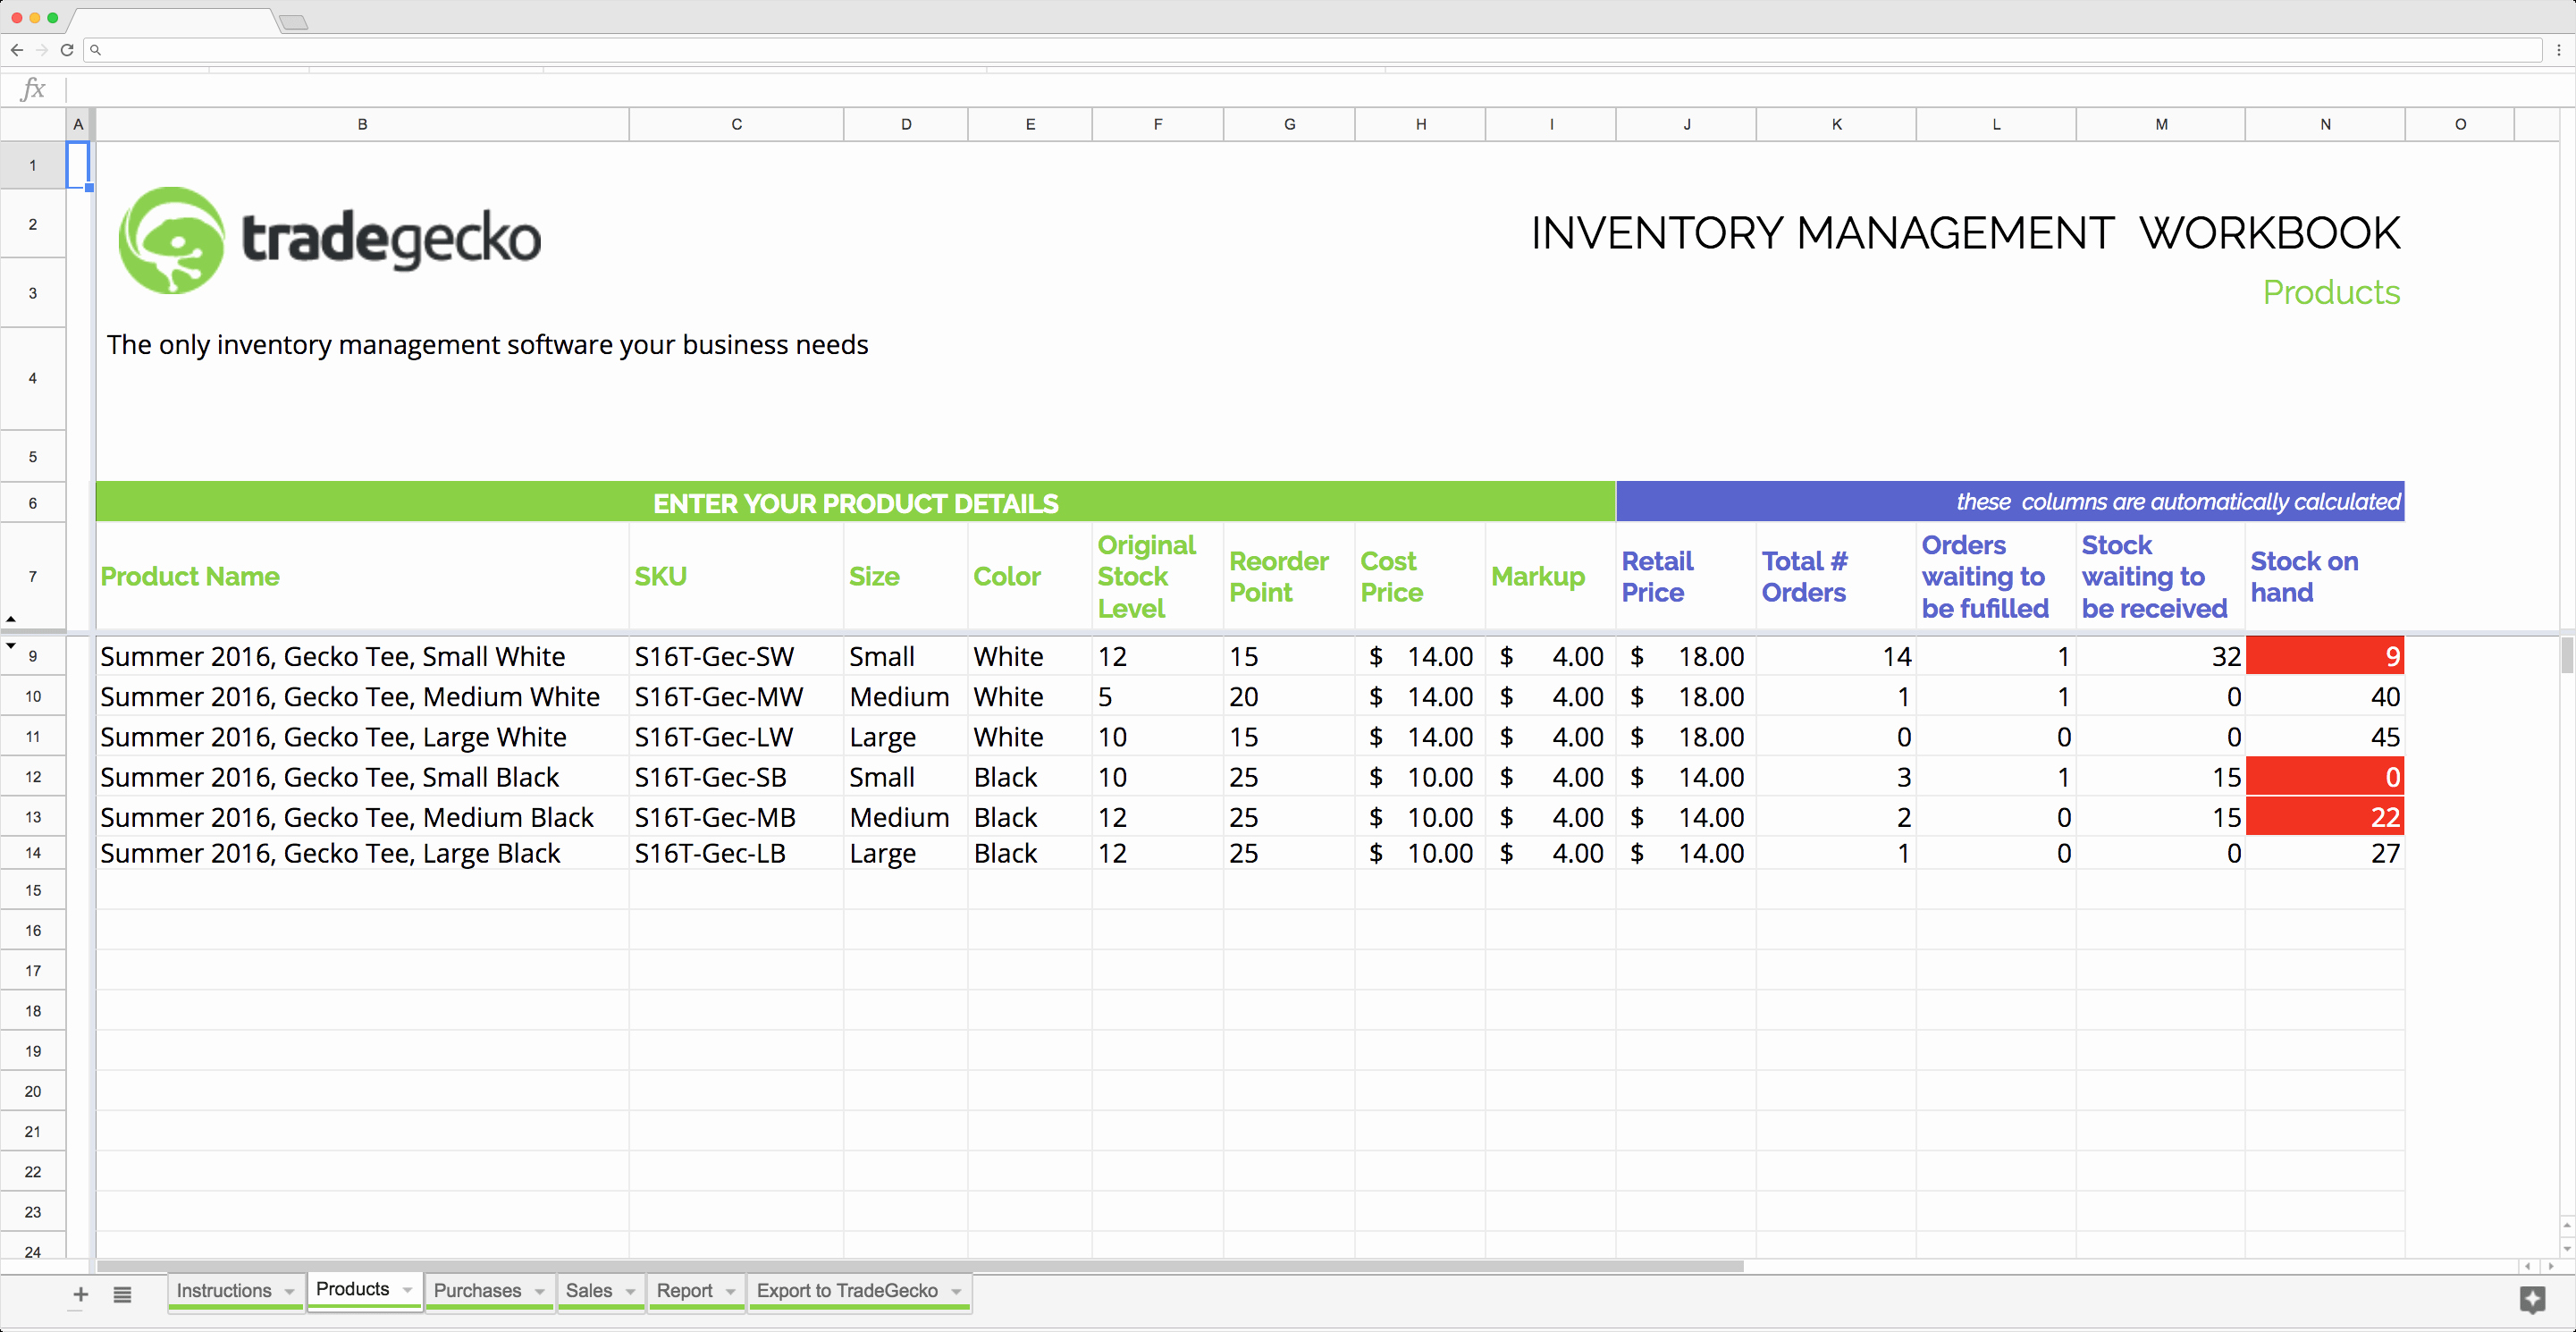 Inventory Template Google Sheets Awesome top 5 Free Google Sheets Inventory Templates Blog Sheetgo